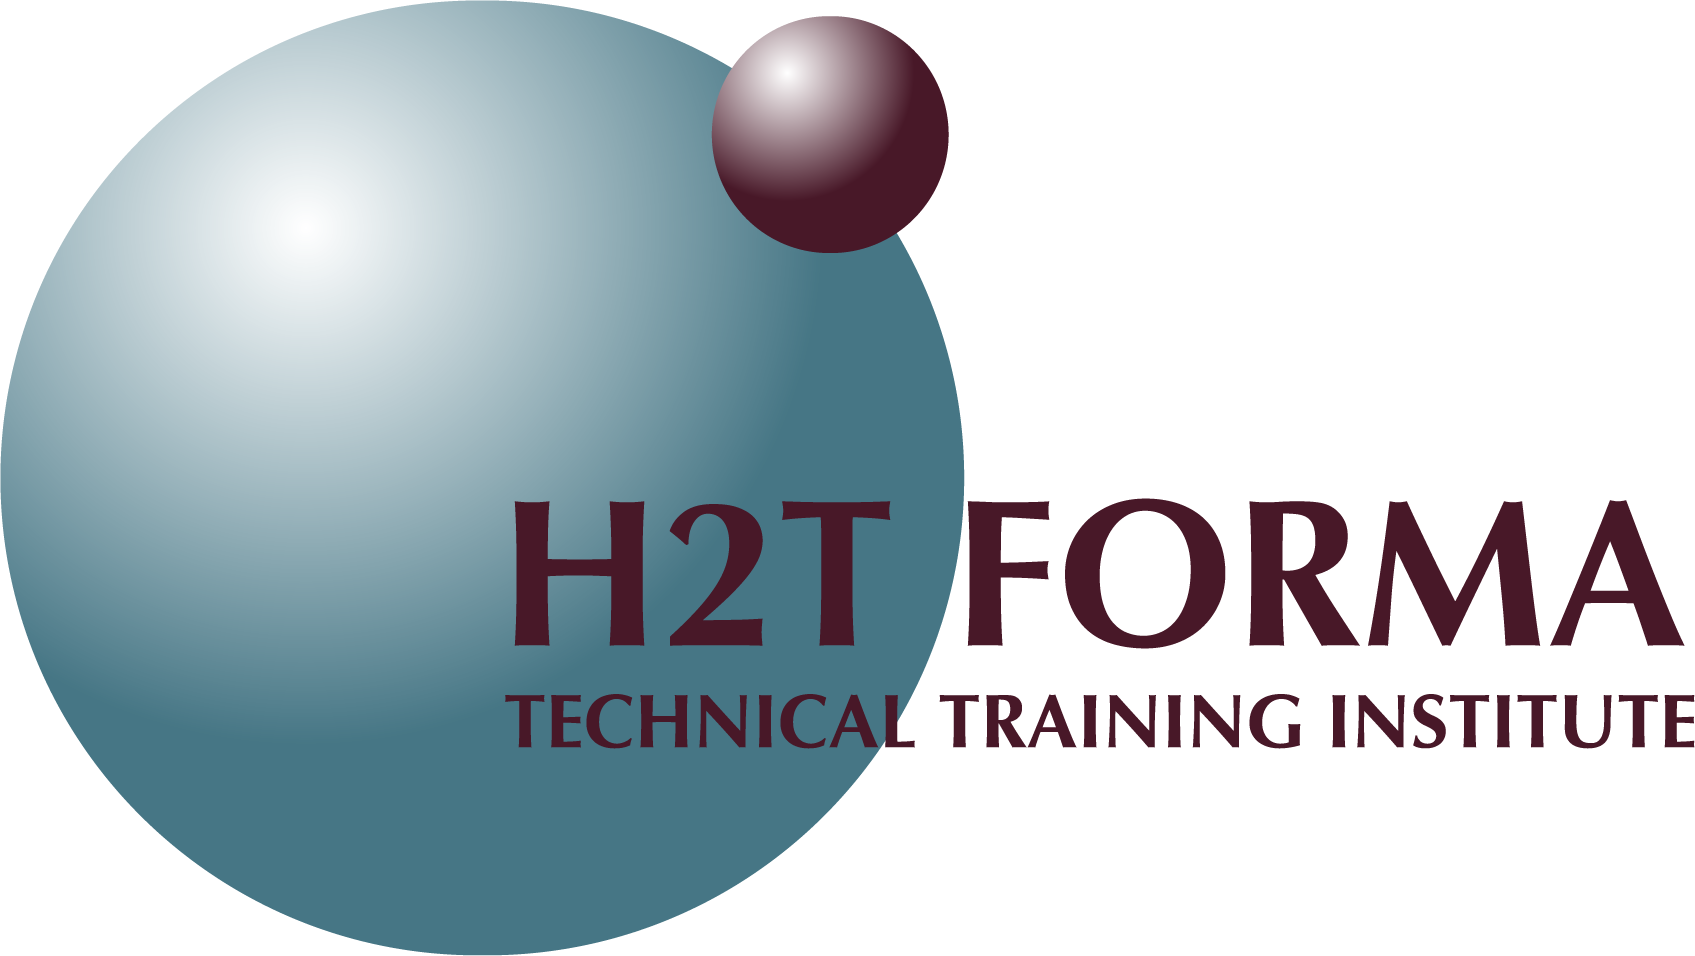 H2T forma 2021